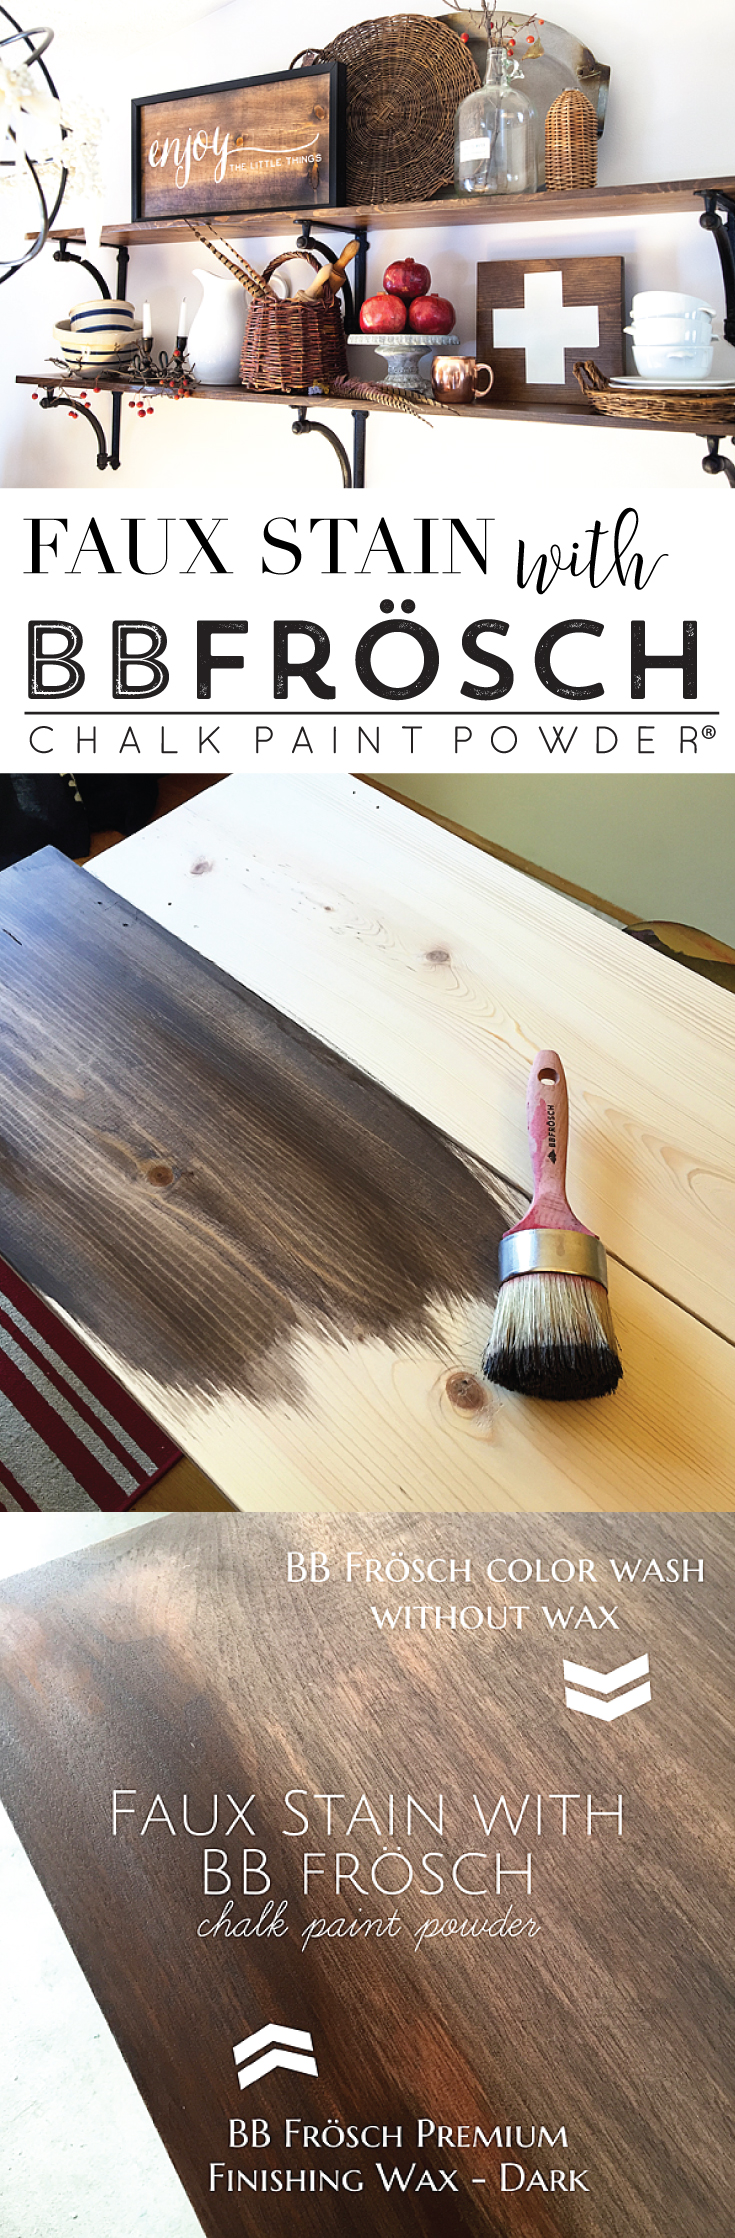 Faux-Stain-with-BB-Frösch-Chalk-Paint-Powder